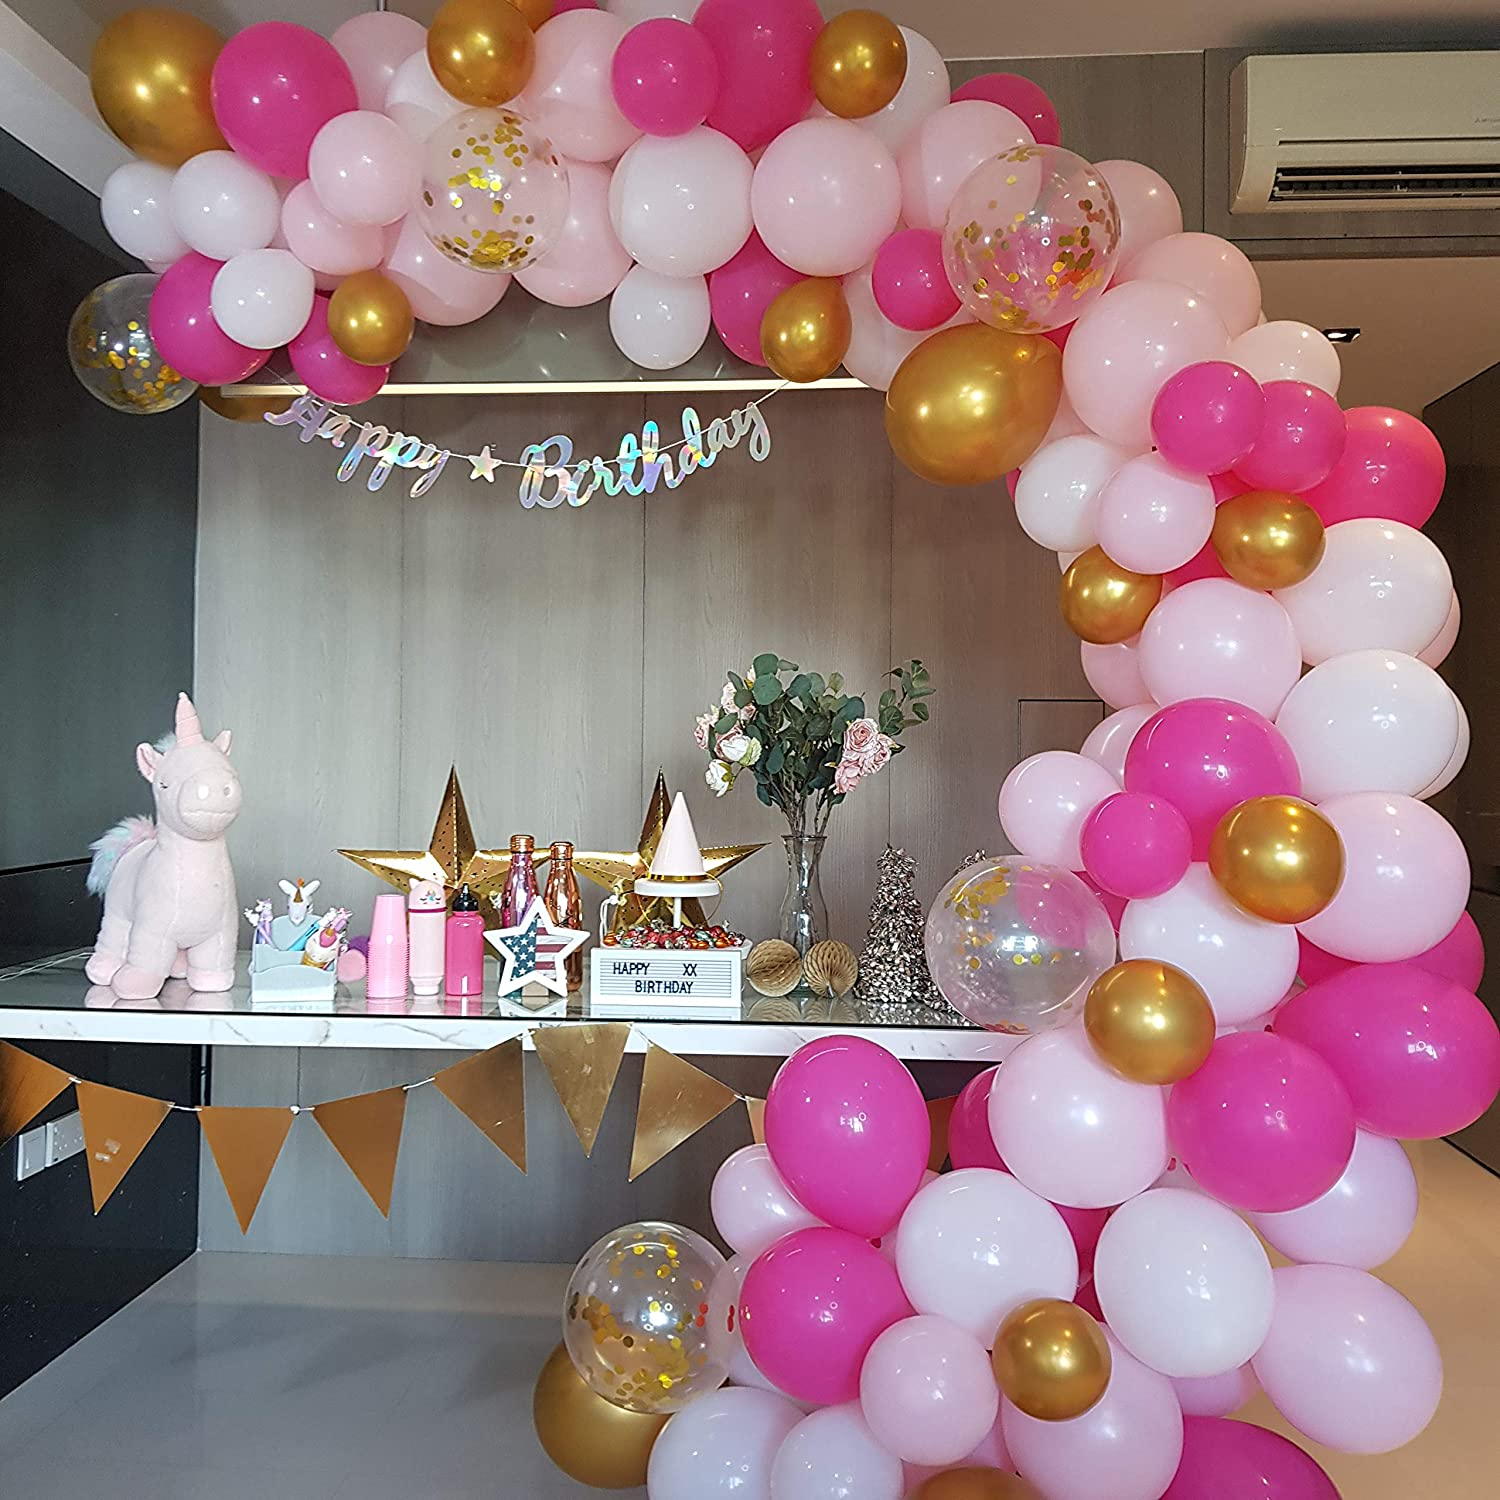 RC&Z Pink Balloon Garland Arch Kit - 120 DIY Hot Pink, Light Pink, White, Gold Metallic and Confetti Latex Balloons for Baby Shower Decorations Bachelorette Birthday Party Backdrop Background Supplies